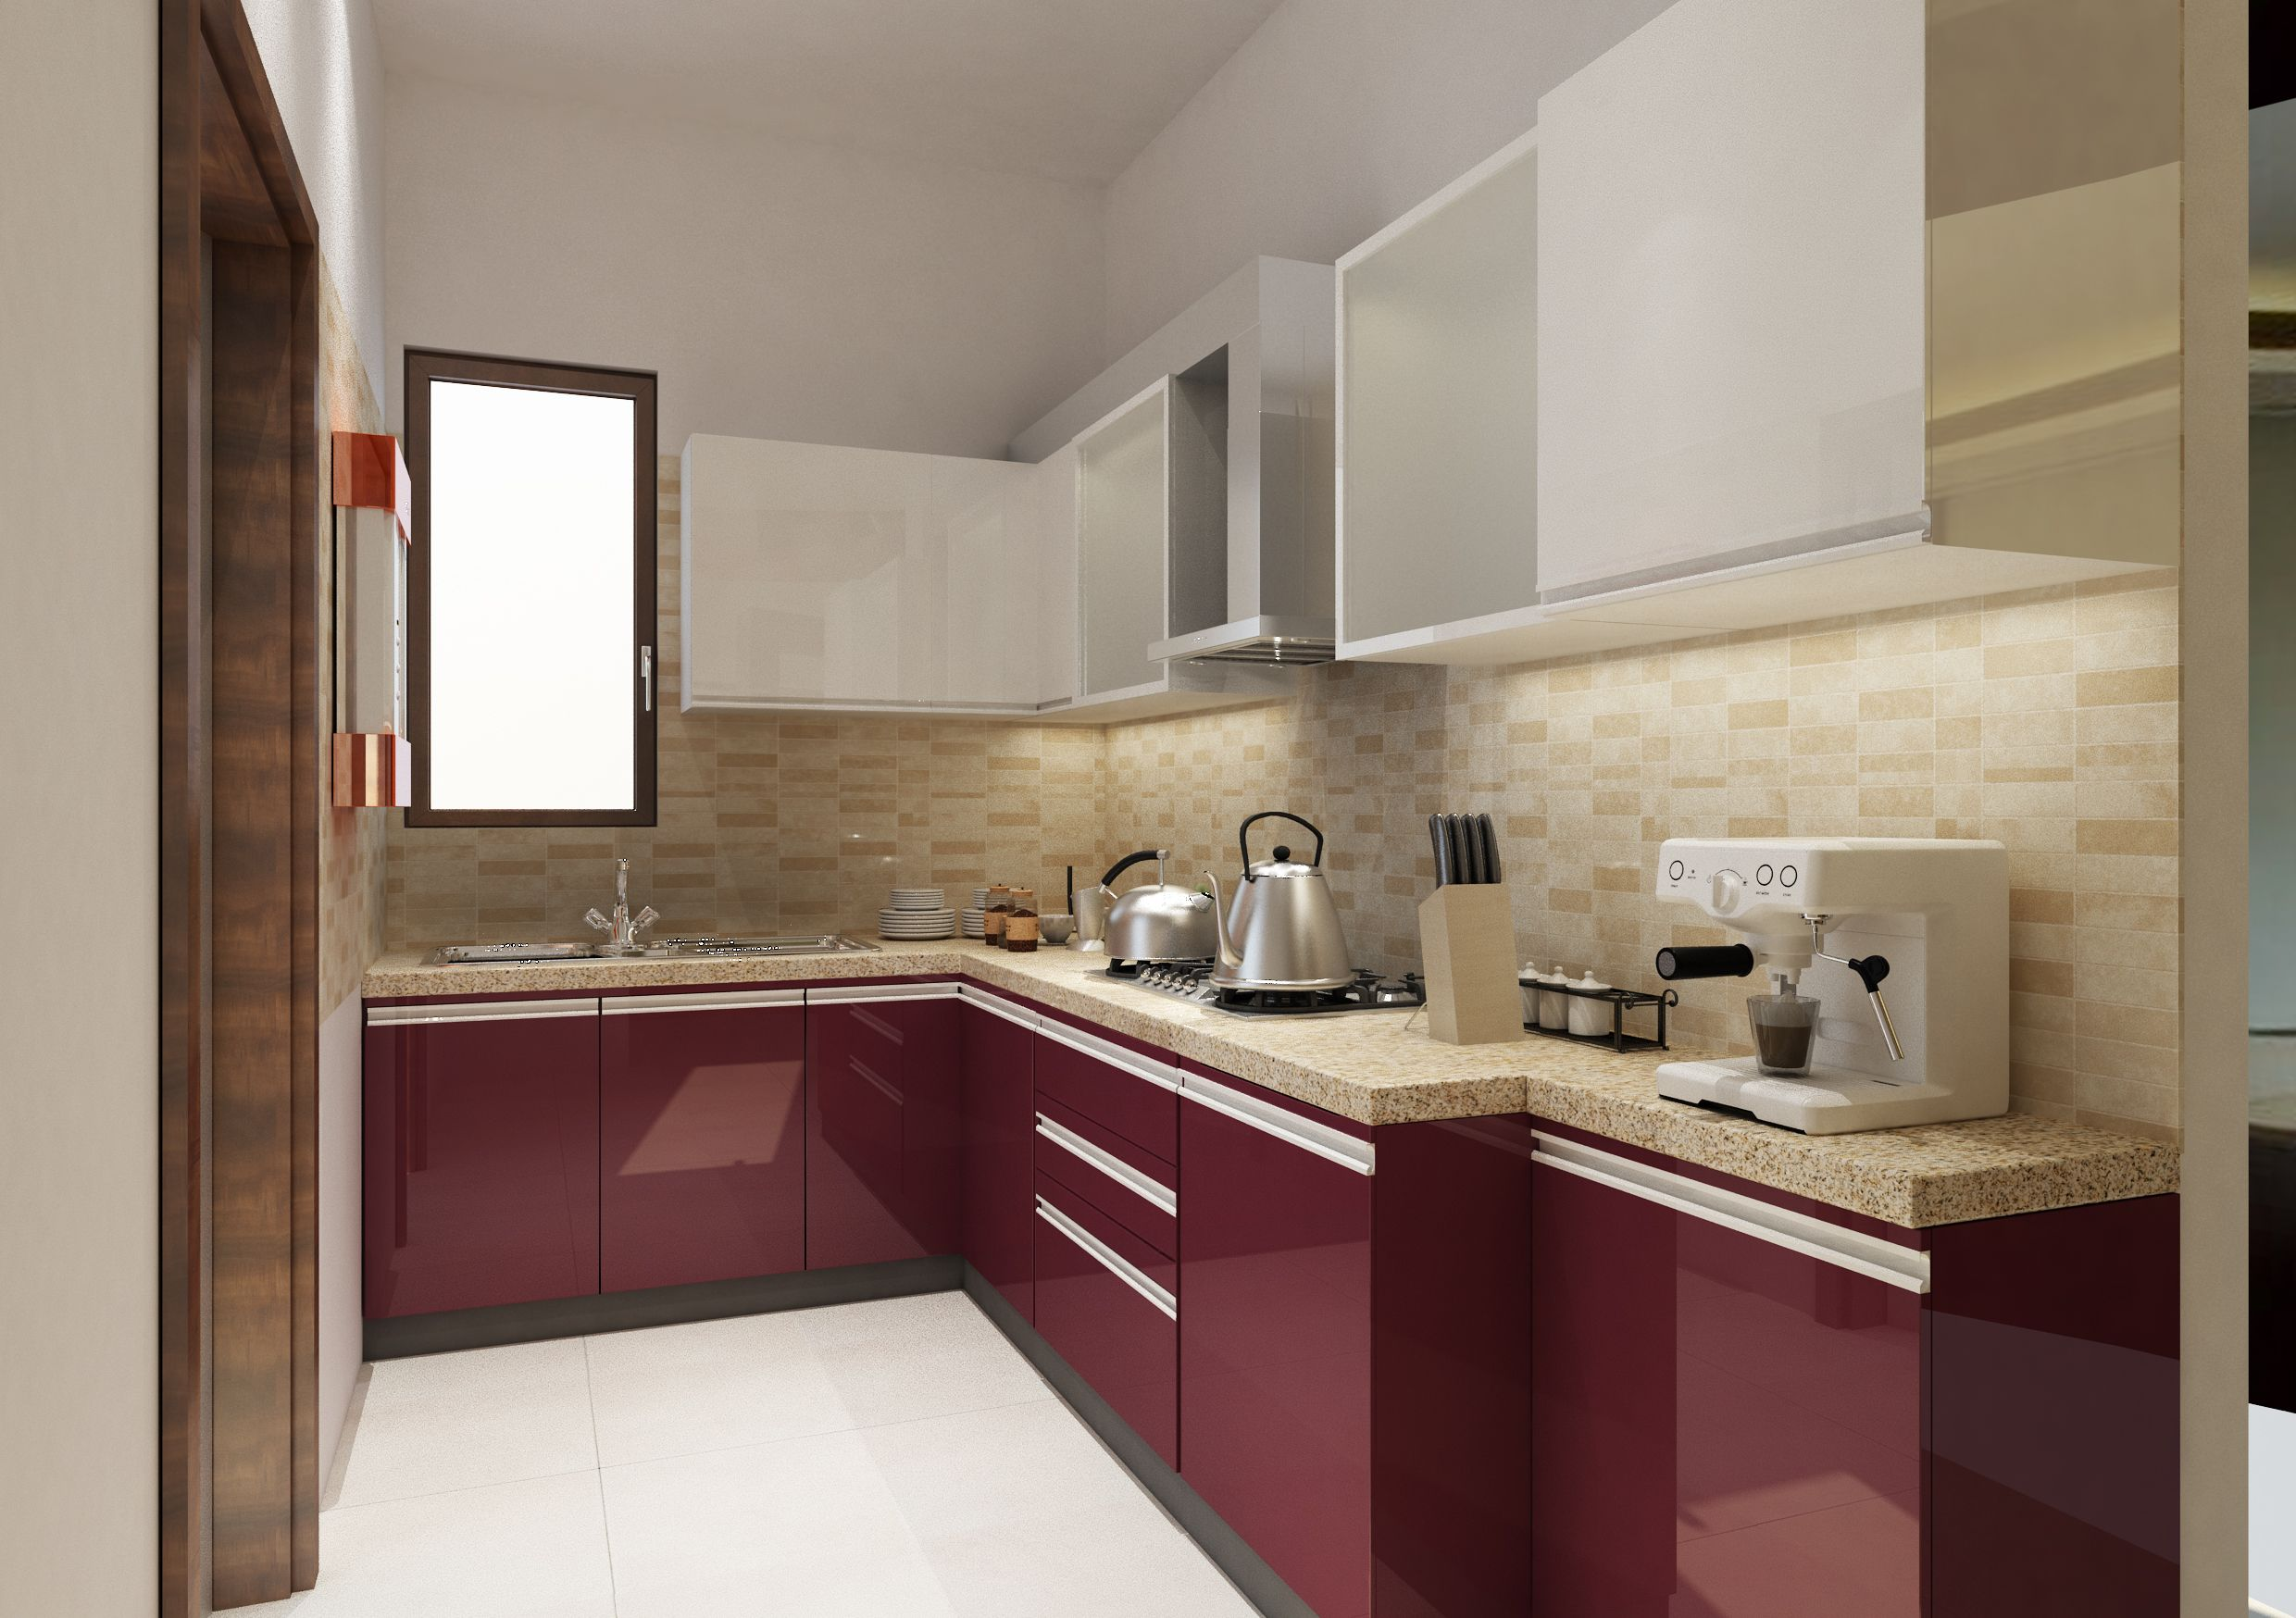 pune kitchens is the carysil modular kitchen supplier pany in